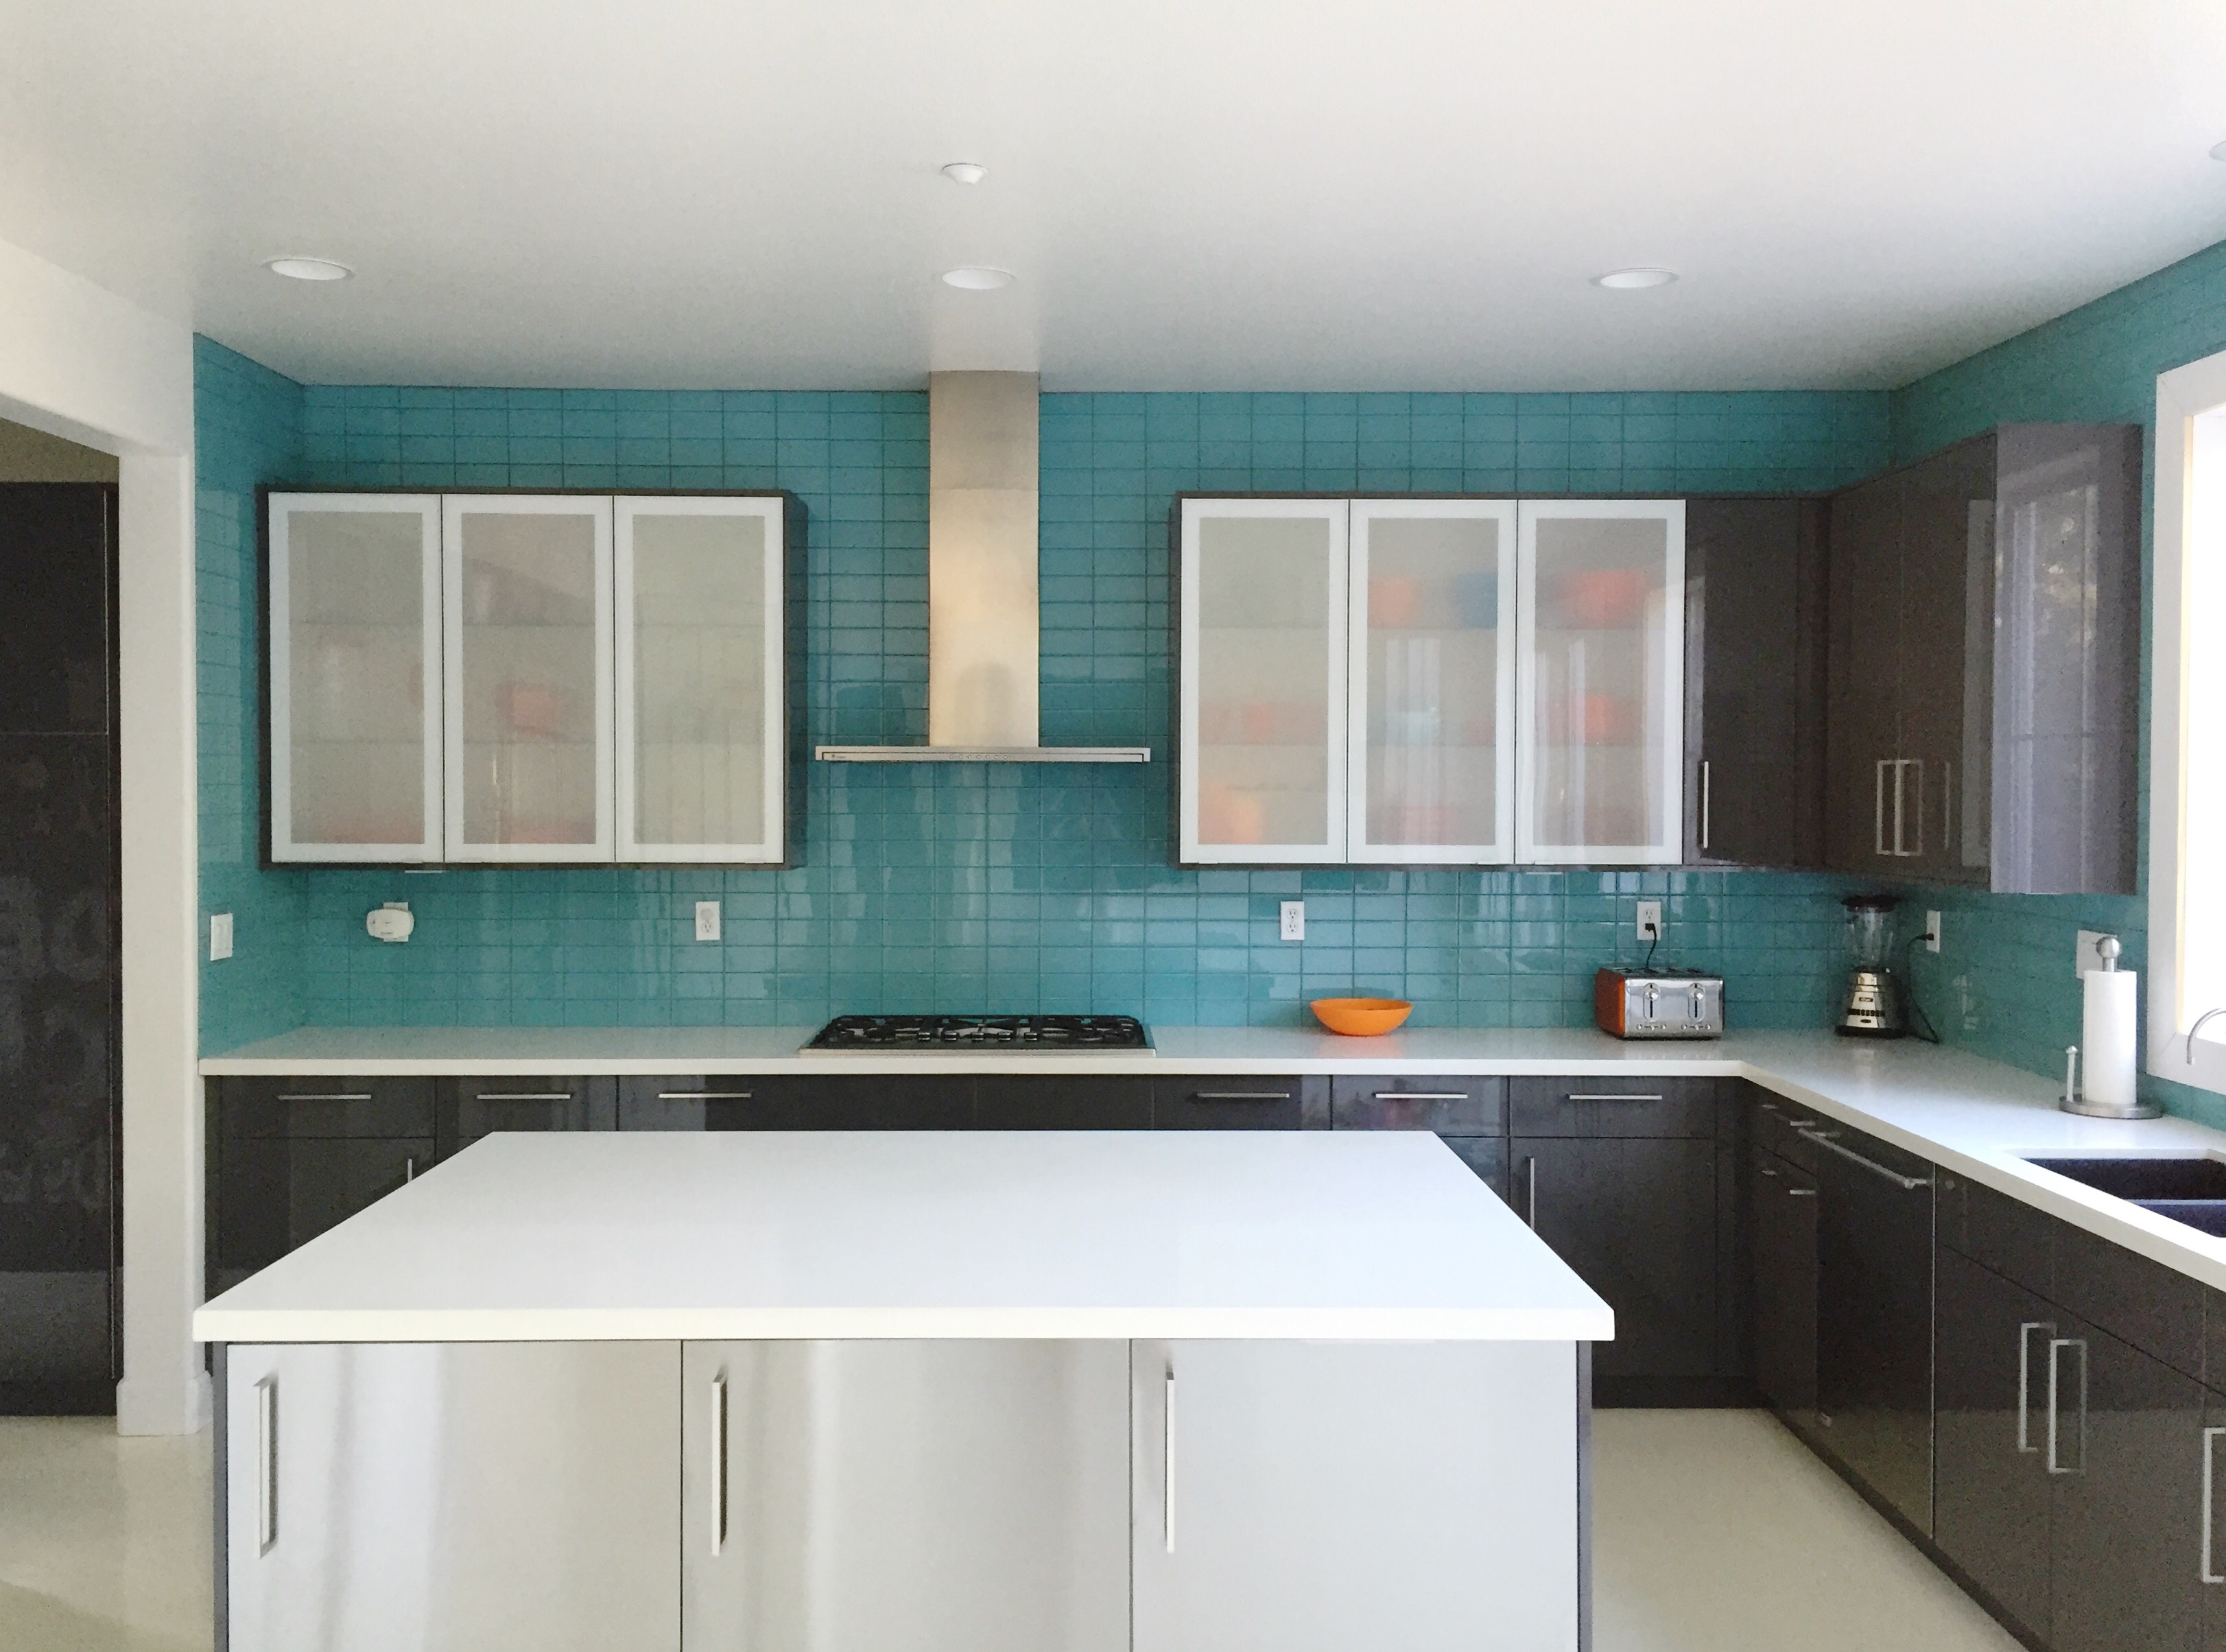 How to Install Glass Tile Backsplash - Easy DIY for a Better Kitchen